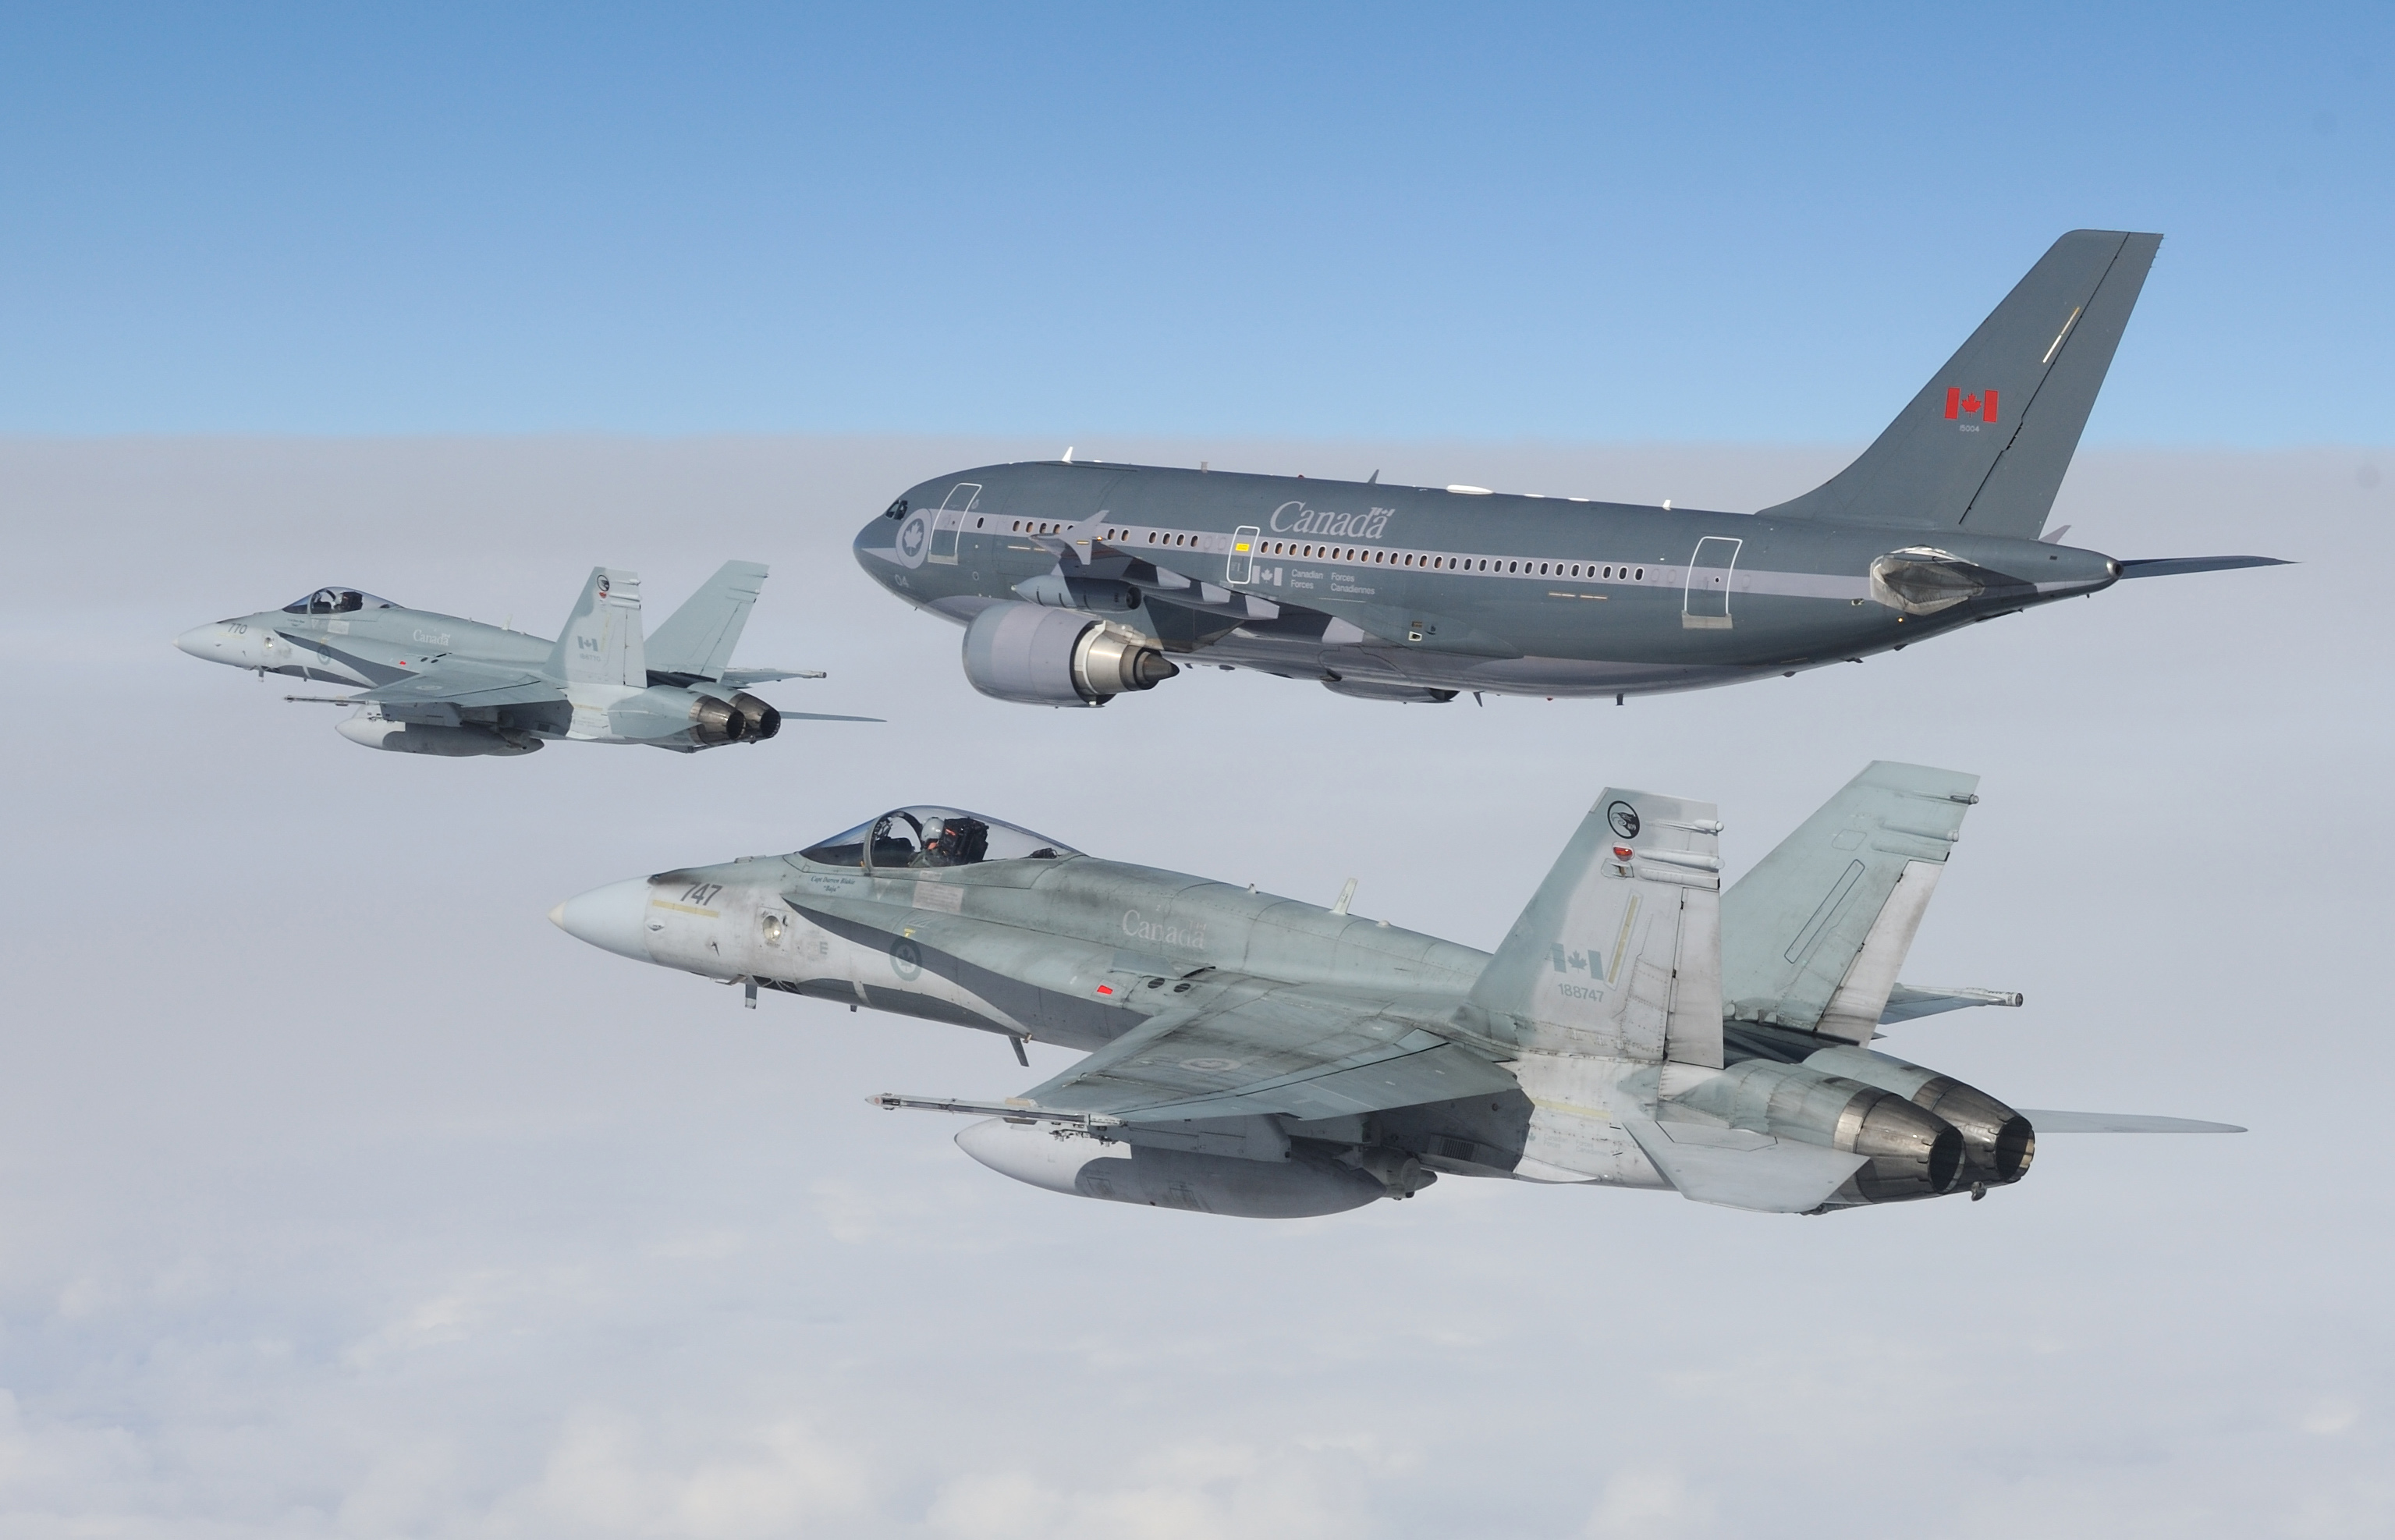 2f18s and jet.jpg